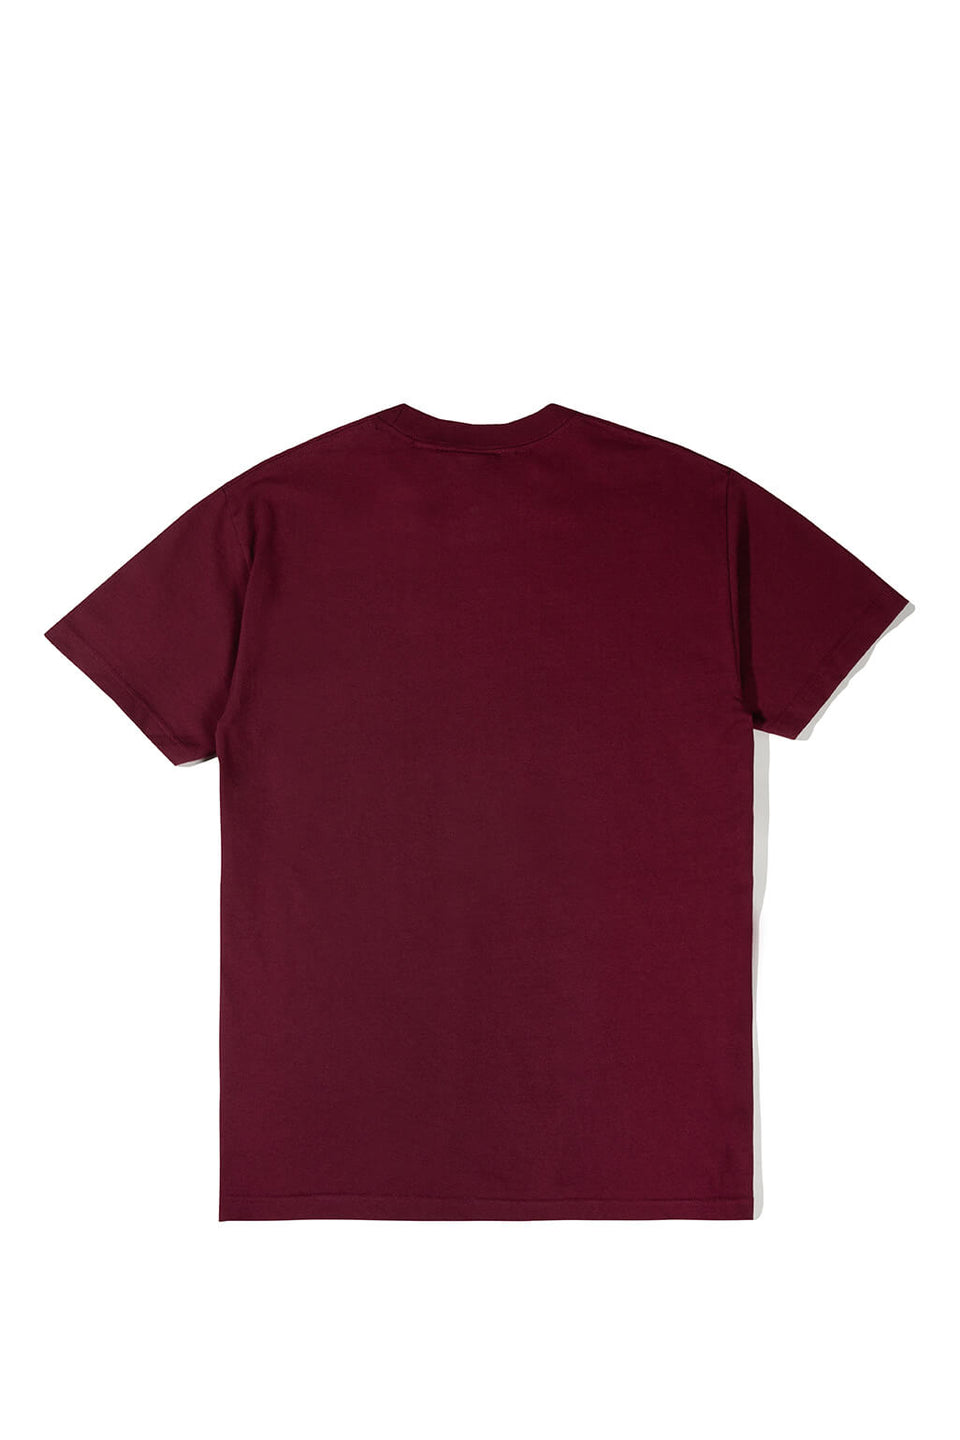 The Hundreds Shadows T-Shirt Burgundy